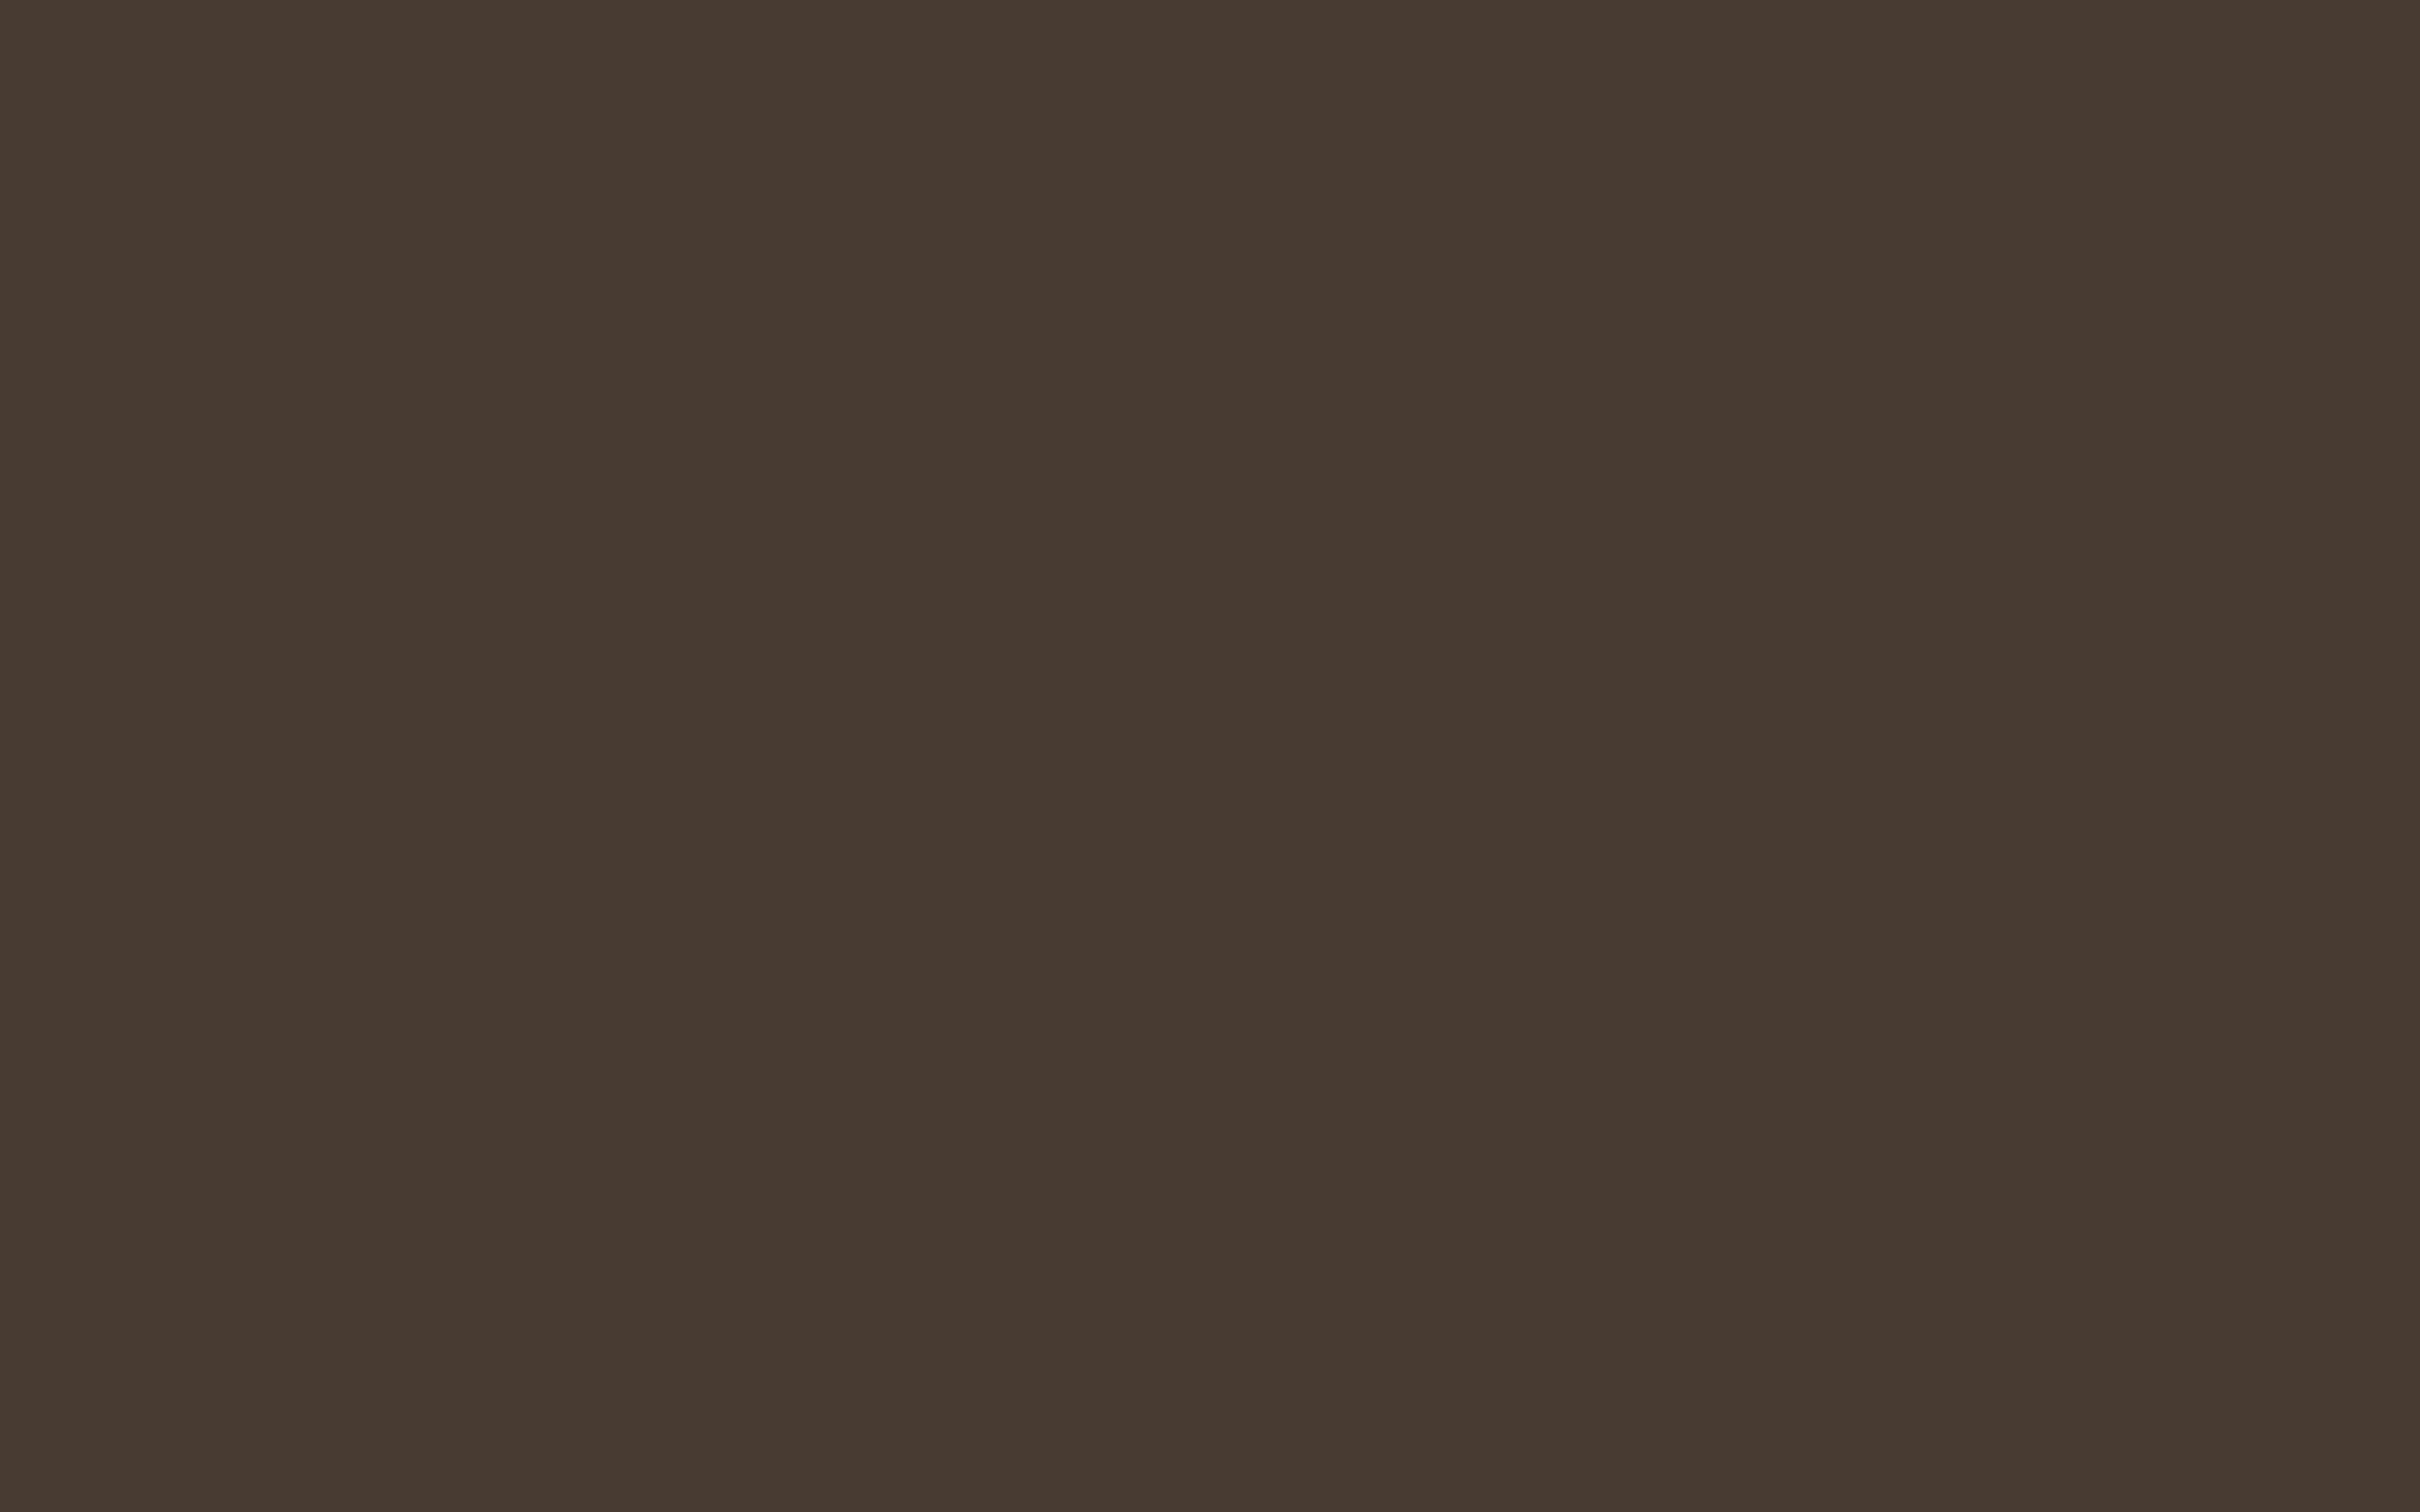 2880x1800 Taupe Solid Color Background